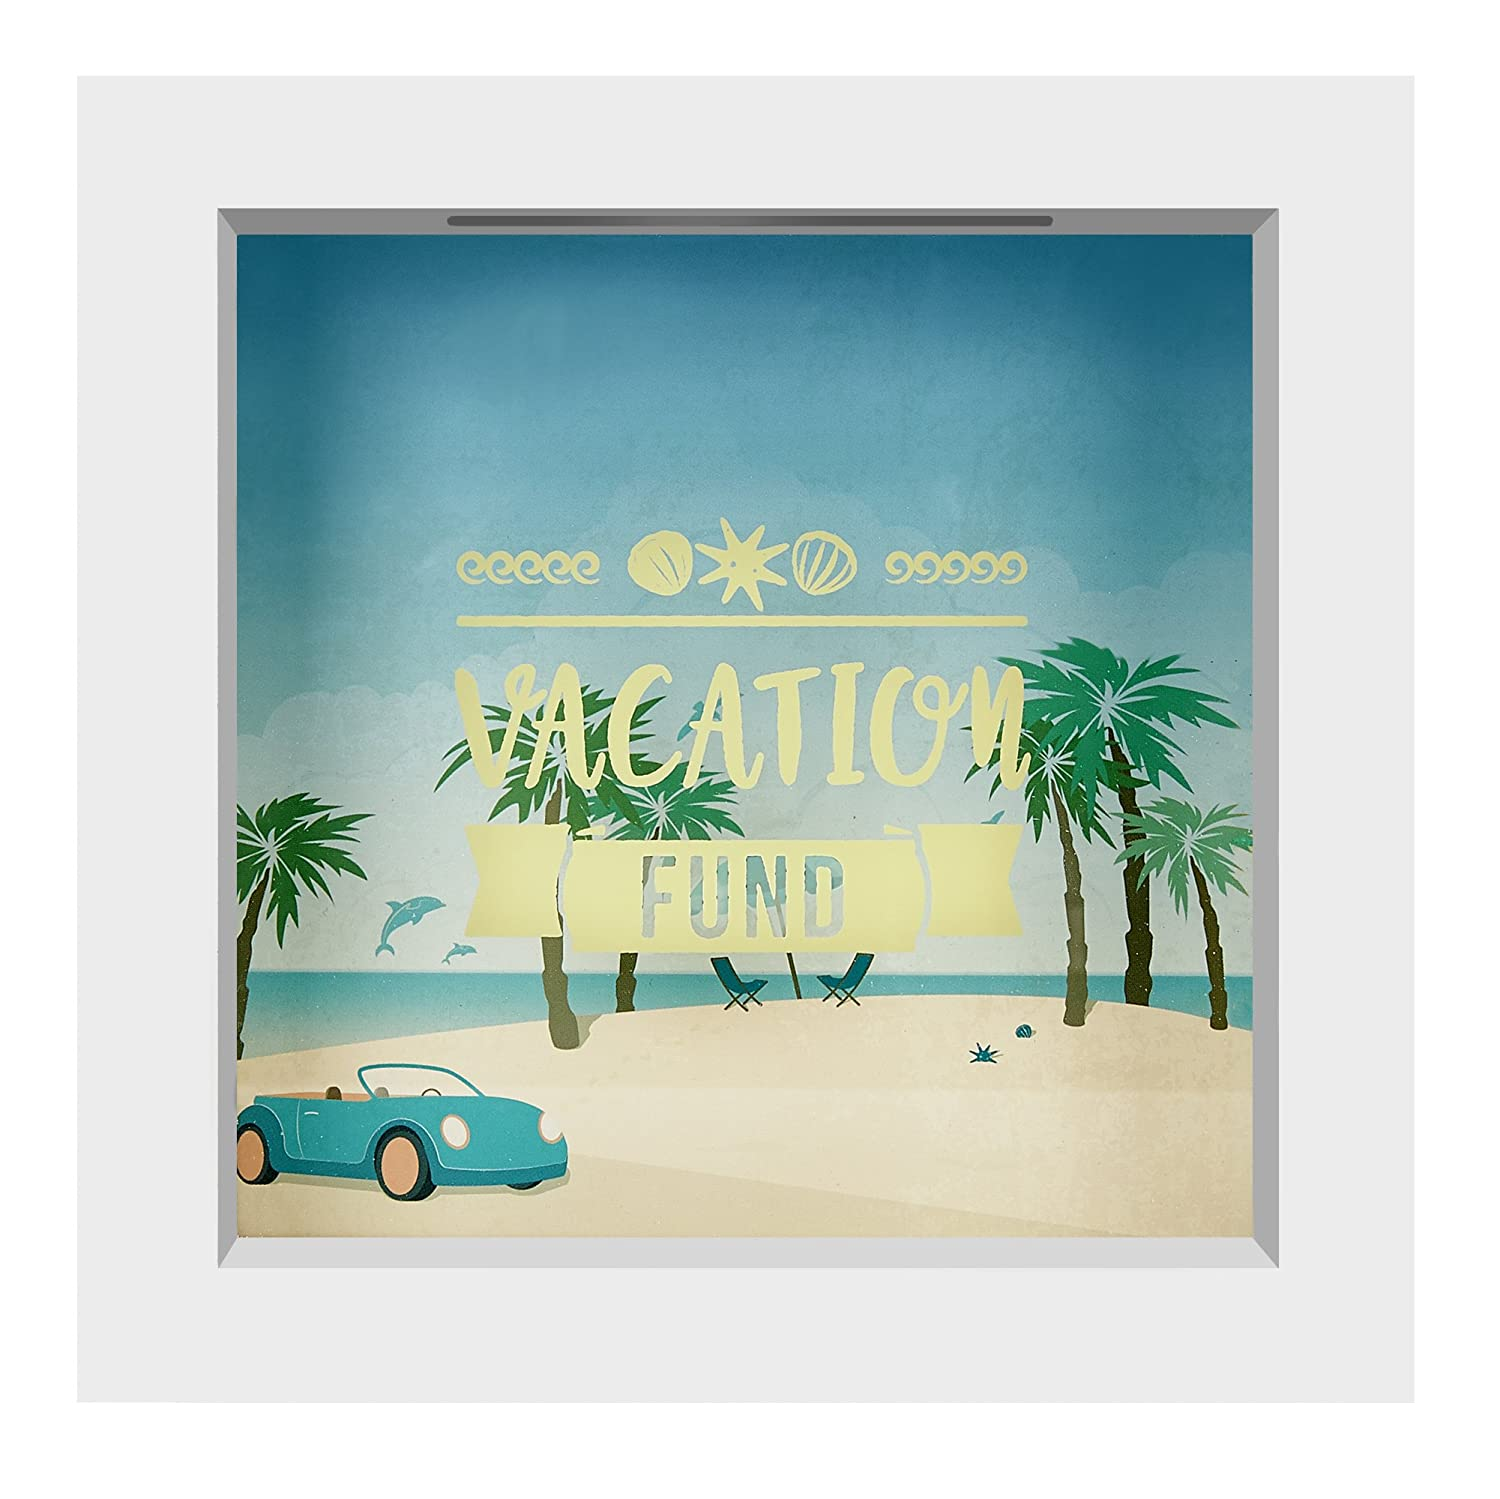 Americanflat 6x6 Inch Vacation Fund Shadow Box Frame